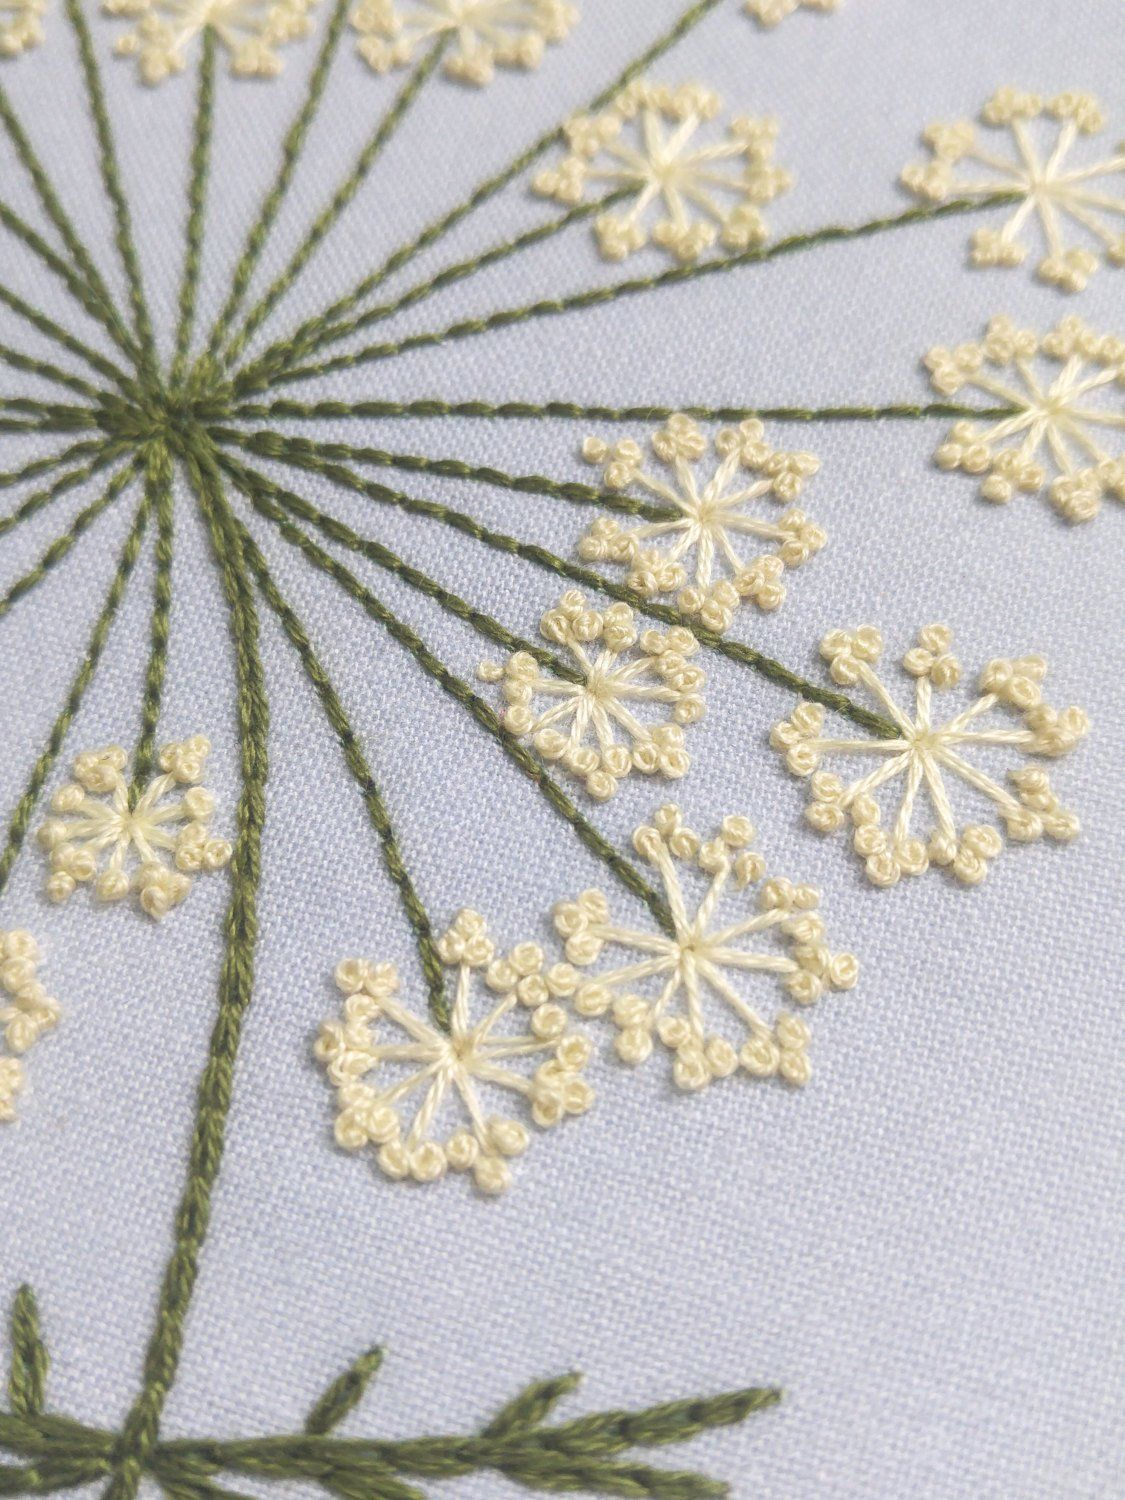 QUEEN ANNES LACE – pdf embroidery pattern, embroidery hoop art, wild carrot blossom, lacy white flower cluster, dandelion, summer wildflower